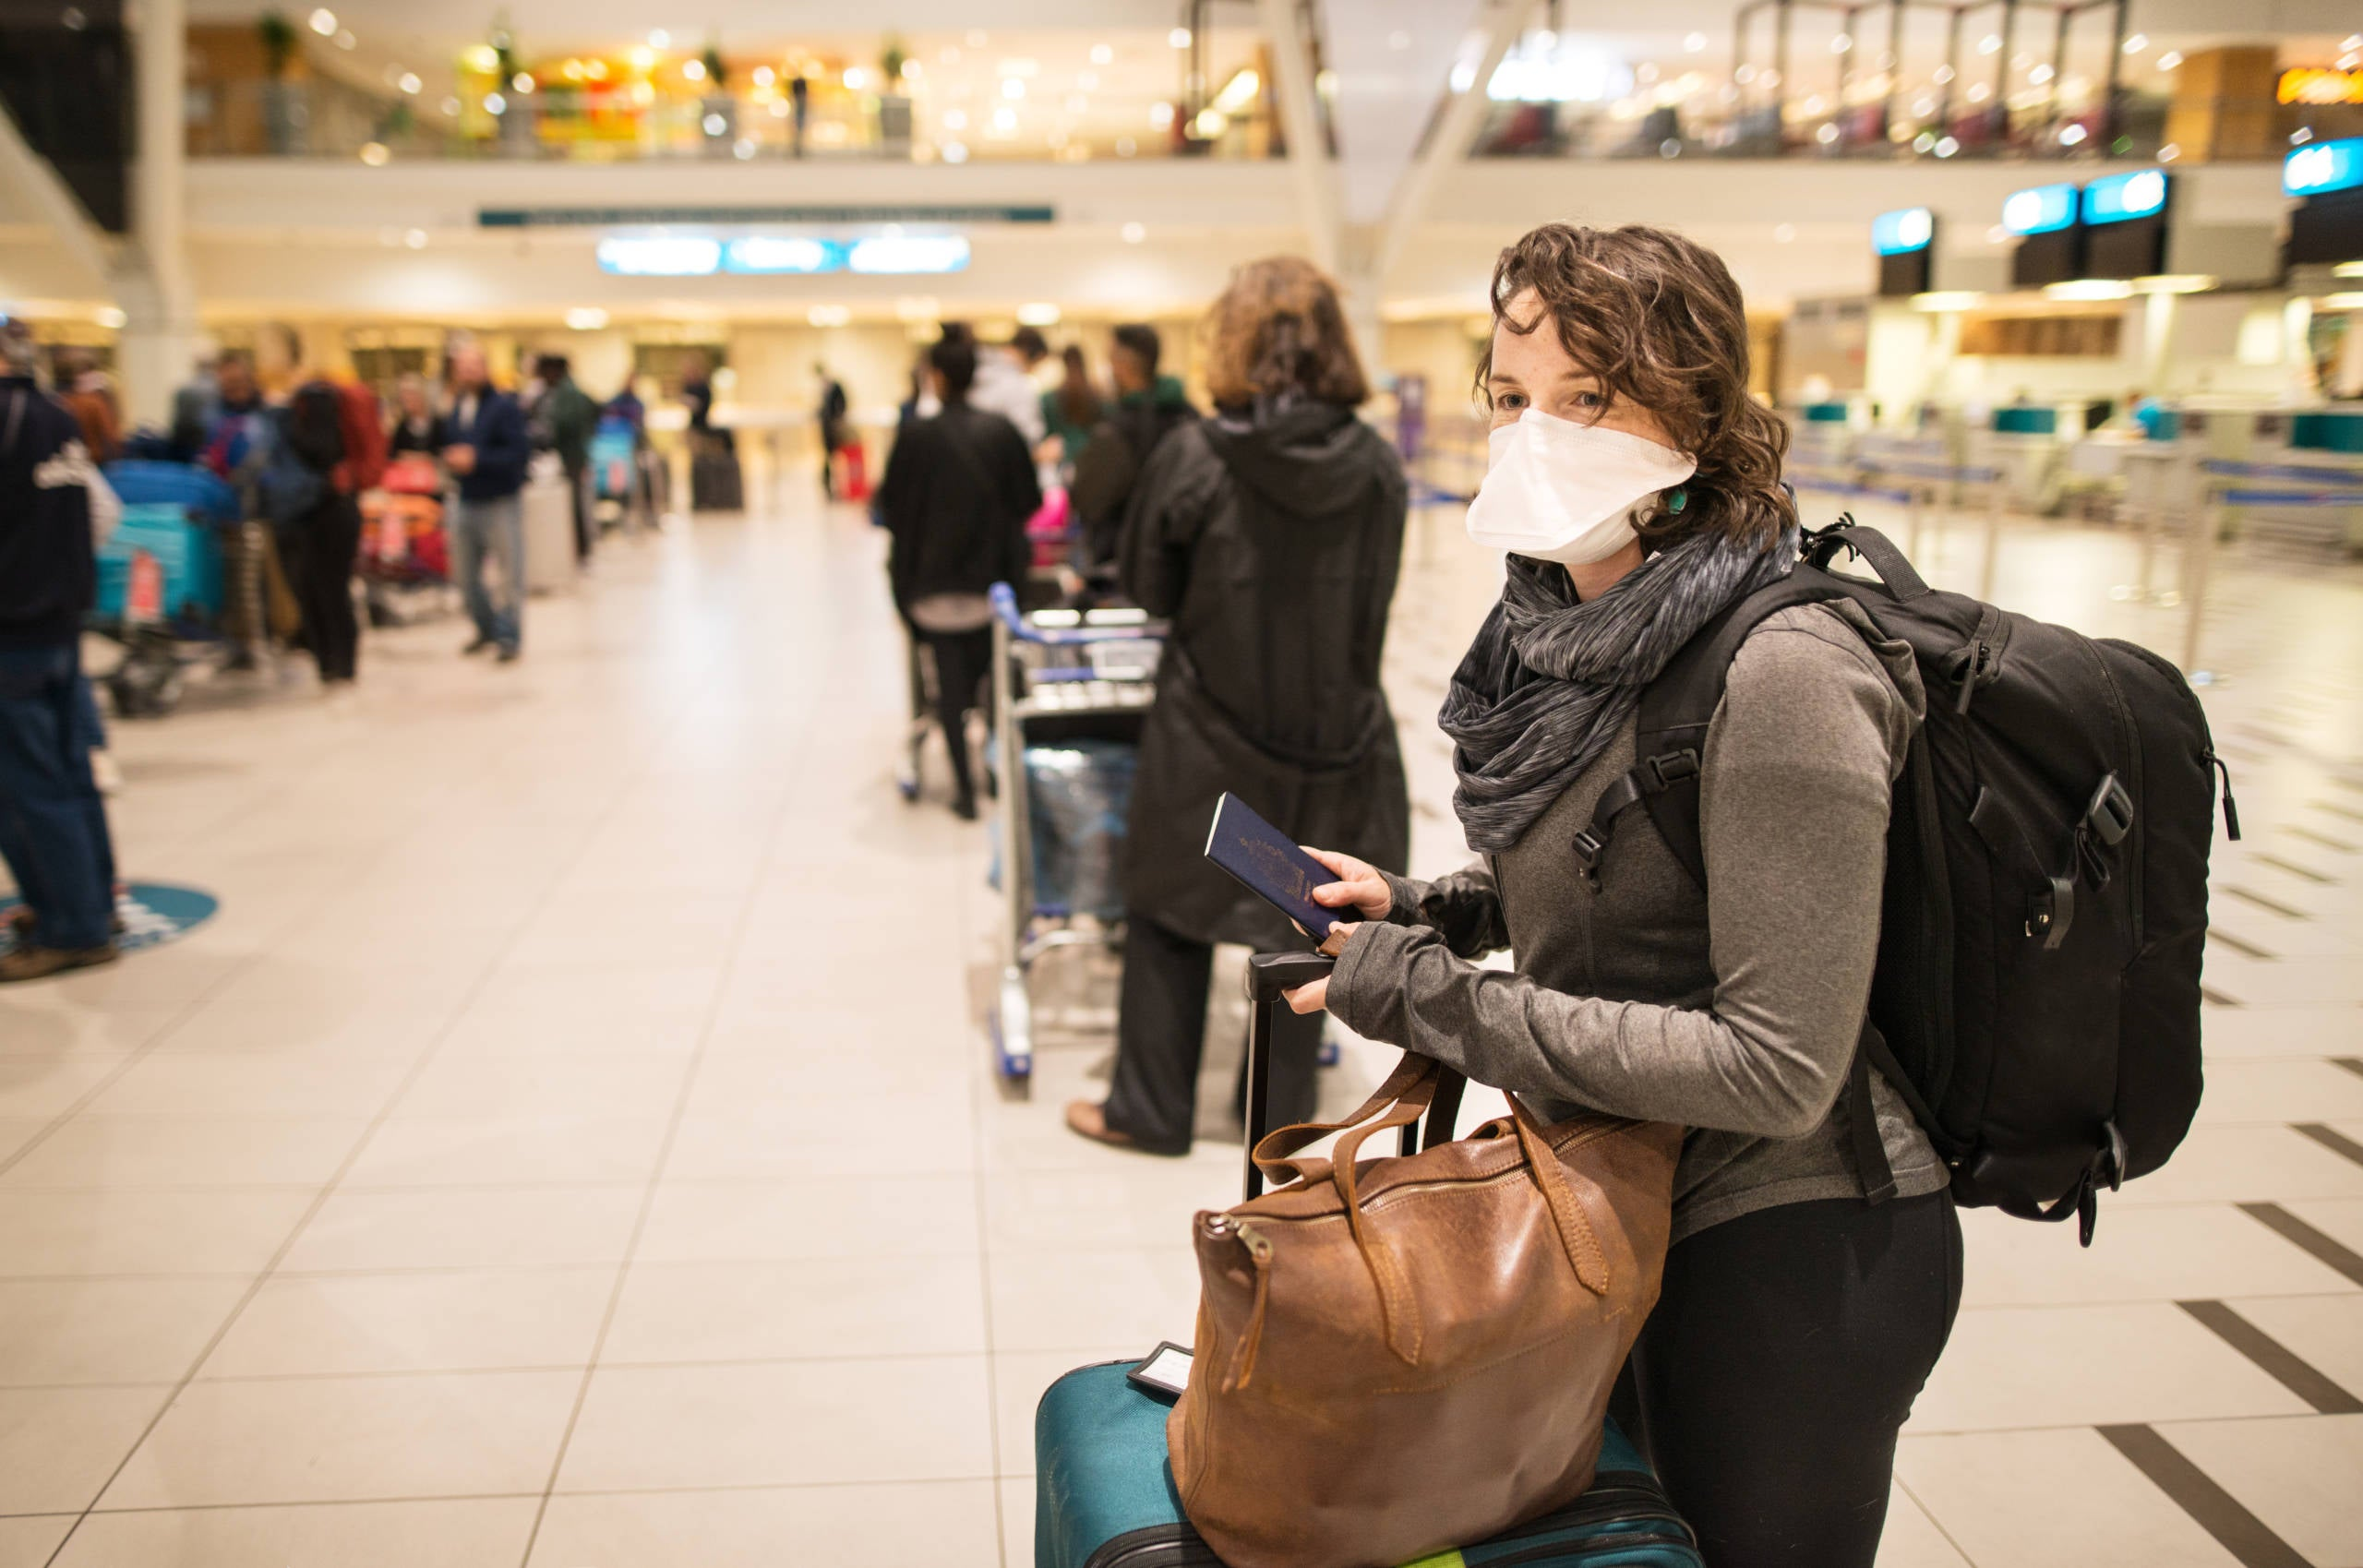 New quarantines in the West: Here's what you need to know coast to coast